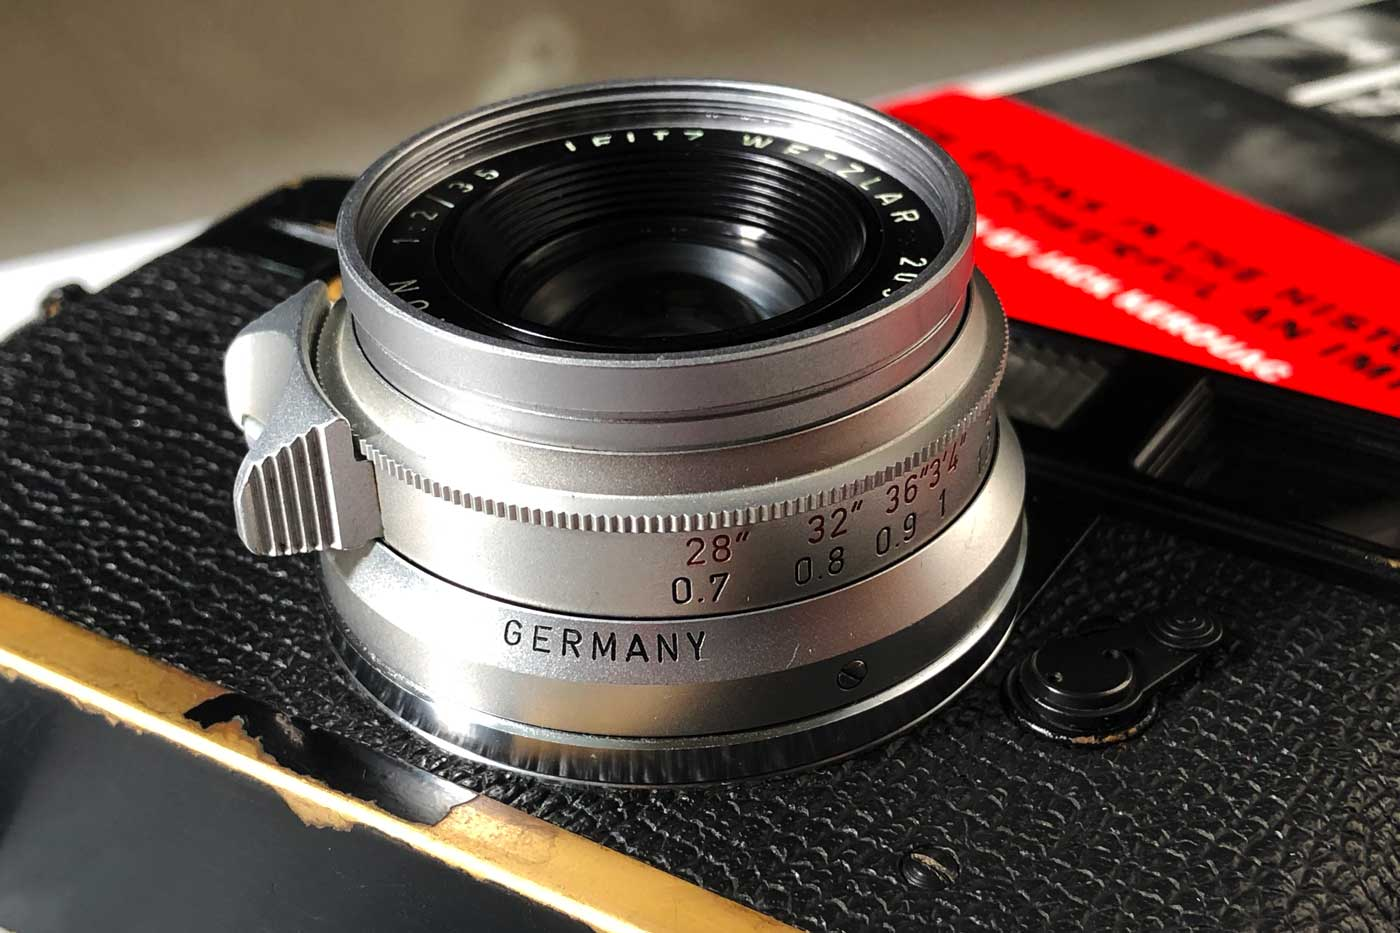 Leica-summicron-35mm-f2-8element-8-element-v1-version1-lens-review-blog-sharing-thoughts-compare-7element-gear-how-performance-lens-barrel-design-optics-germany-made-8mui